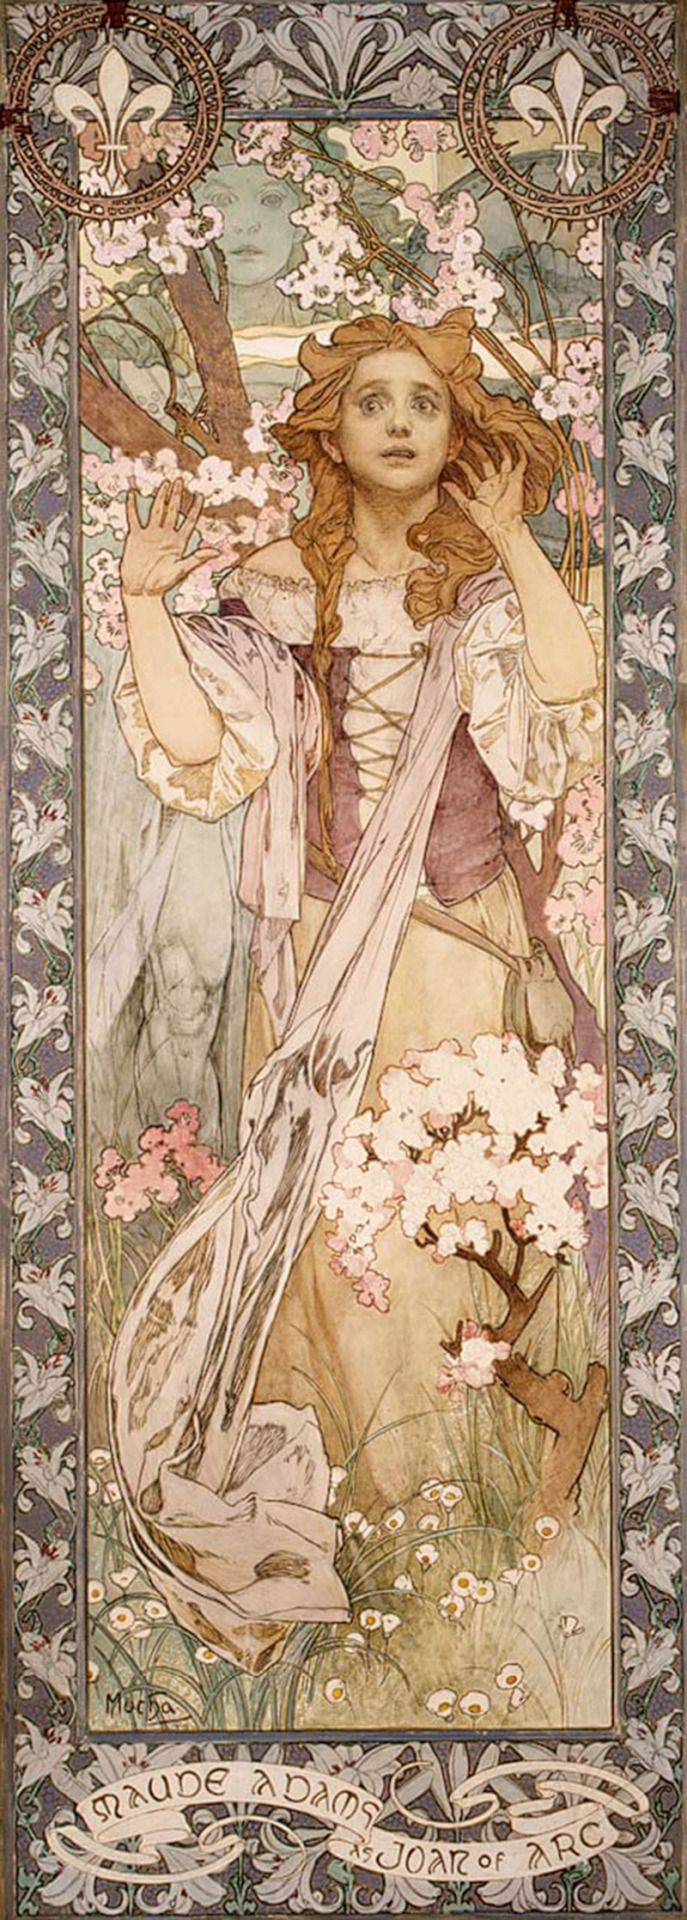 Maude Adams as Joan of Arc (1909). Alphonse Mucha (Czech, 1860–1939). Oil on canvas. Met. Depicts Adams in the role of Joan of Arc in Schiller's Die Jungfrau von Orleans, which she performed in 1909, at Harvard University Stadium. The portrait was made specifically for that one-night gala performance and was displayed as a poster for the event. Mucha also designed the costumes and sets and supervised the direction.